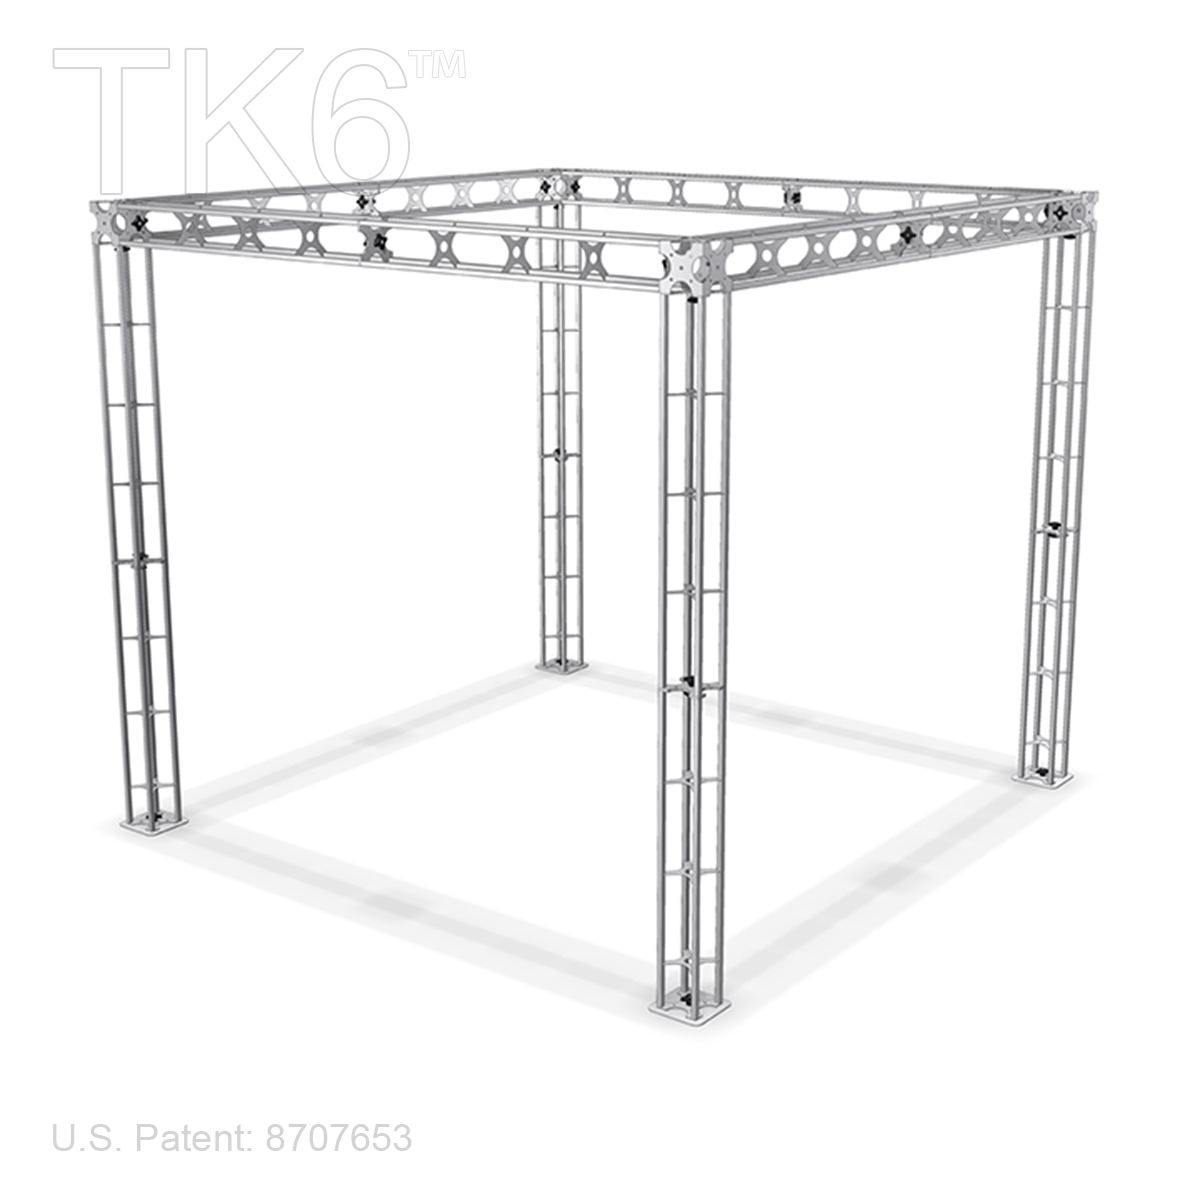 BETHEL - 10FT X 10FT TRUSS DISPLAY [FRAME ONLY]